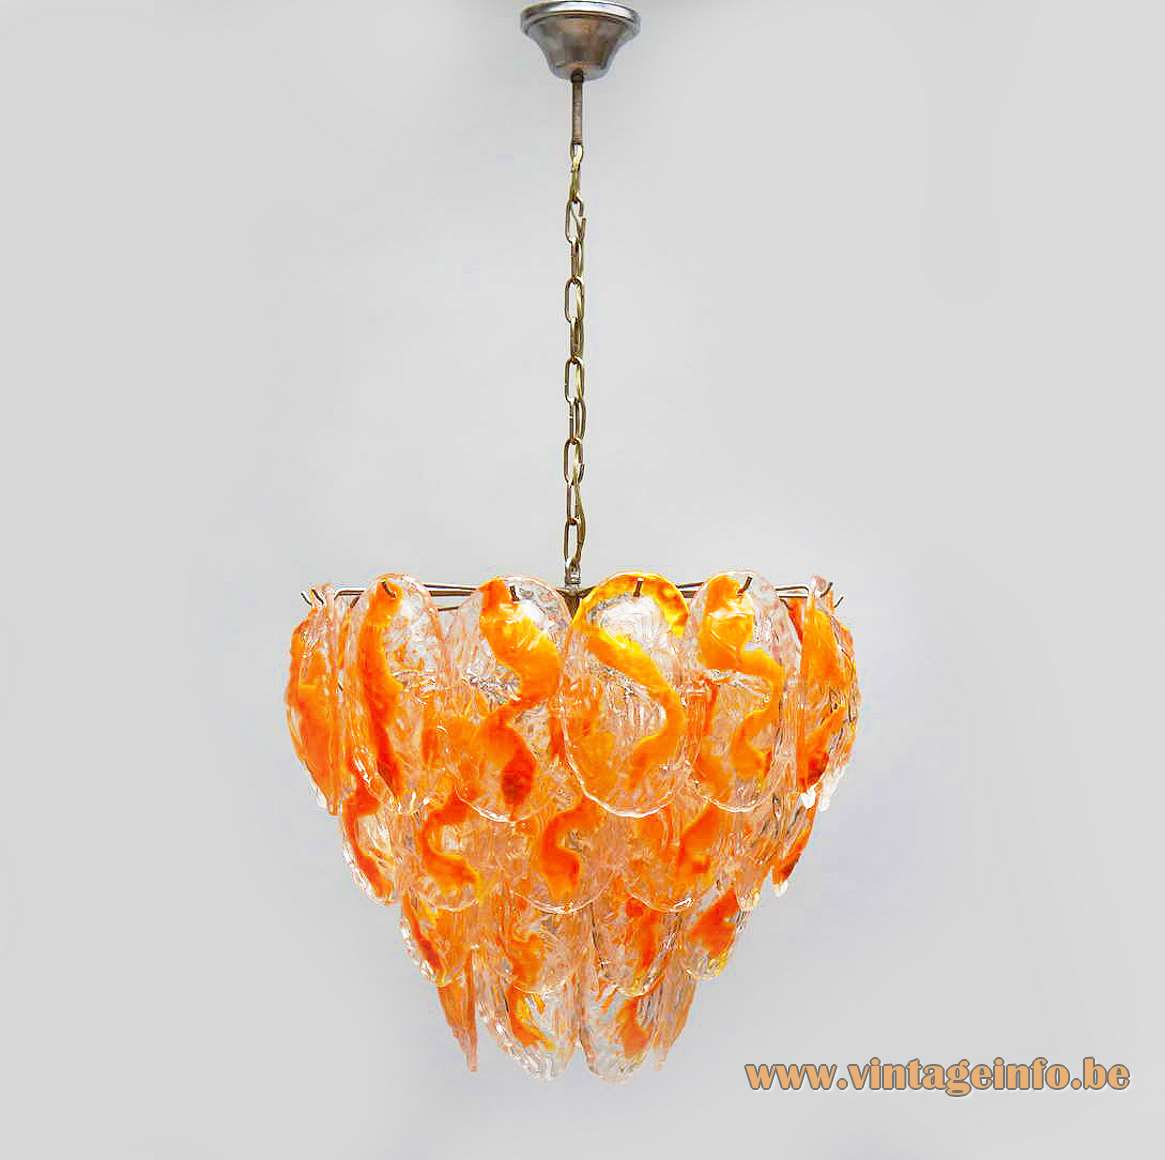 AV Mazzega orange glass leaves chandelier 40 Murano leaves chrome frame chain 12 sockets 1960s 1970s